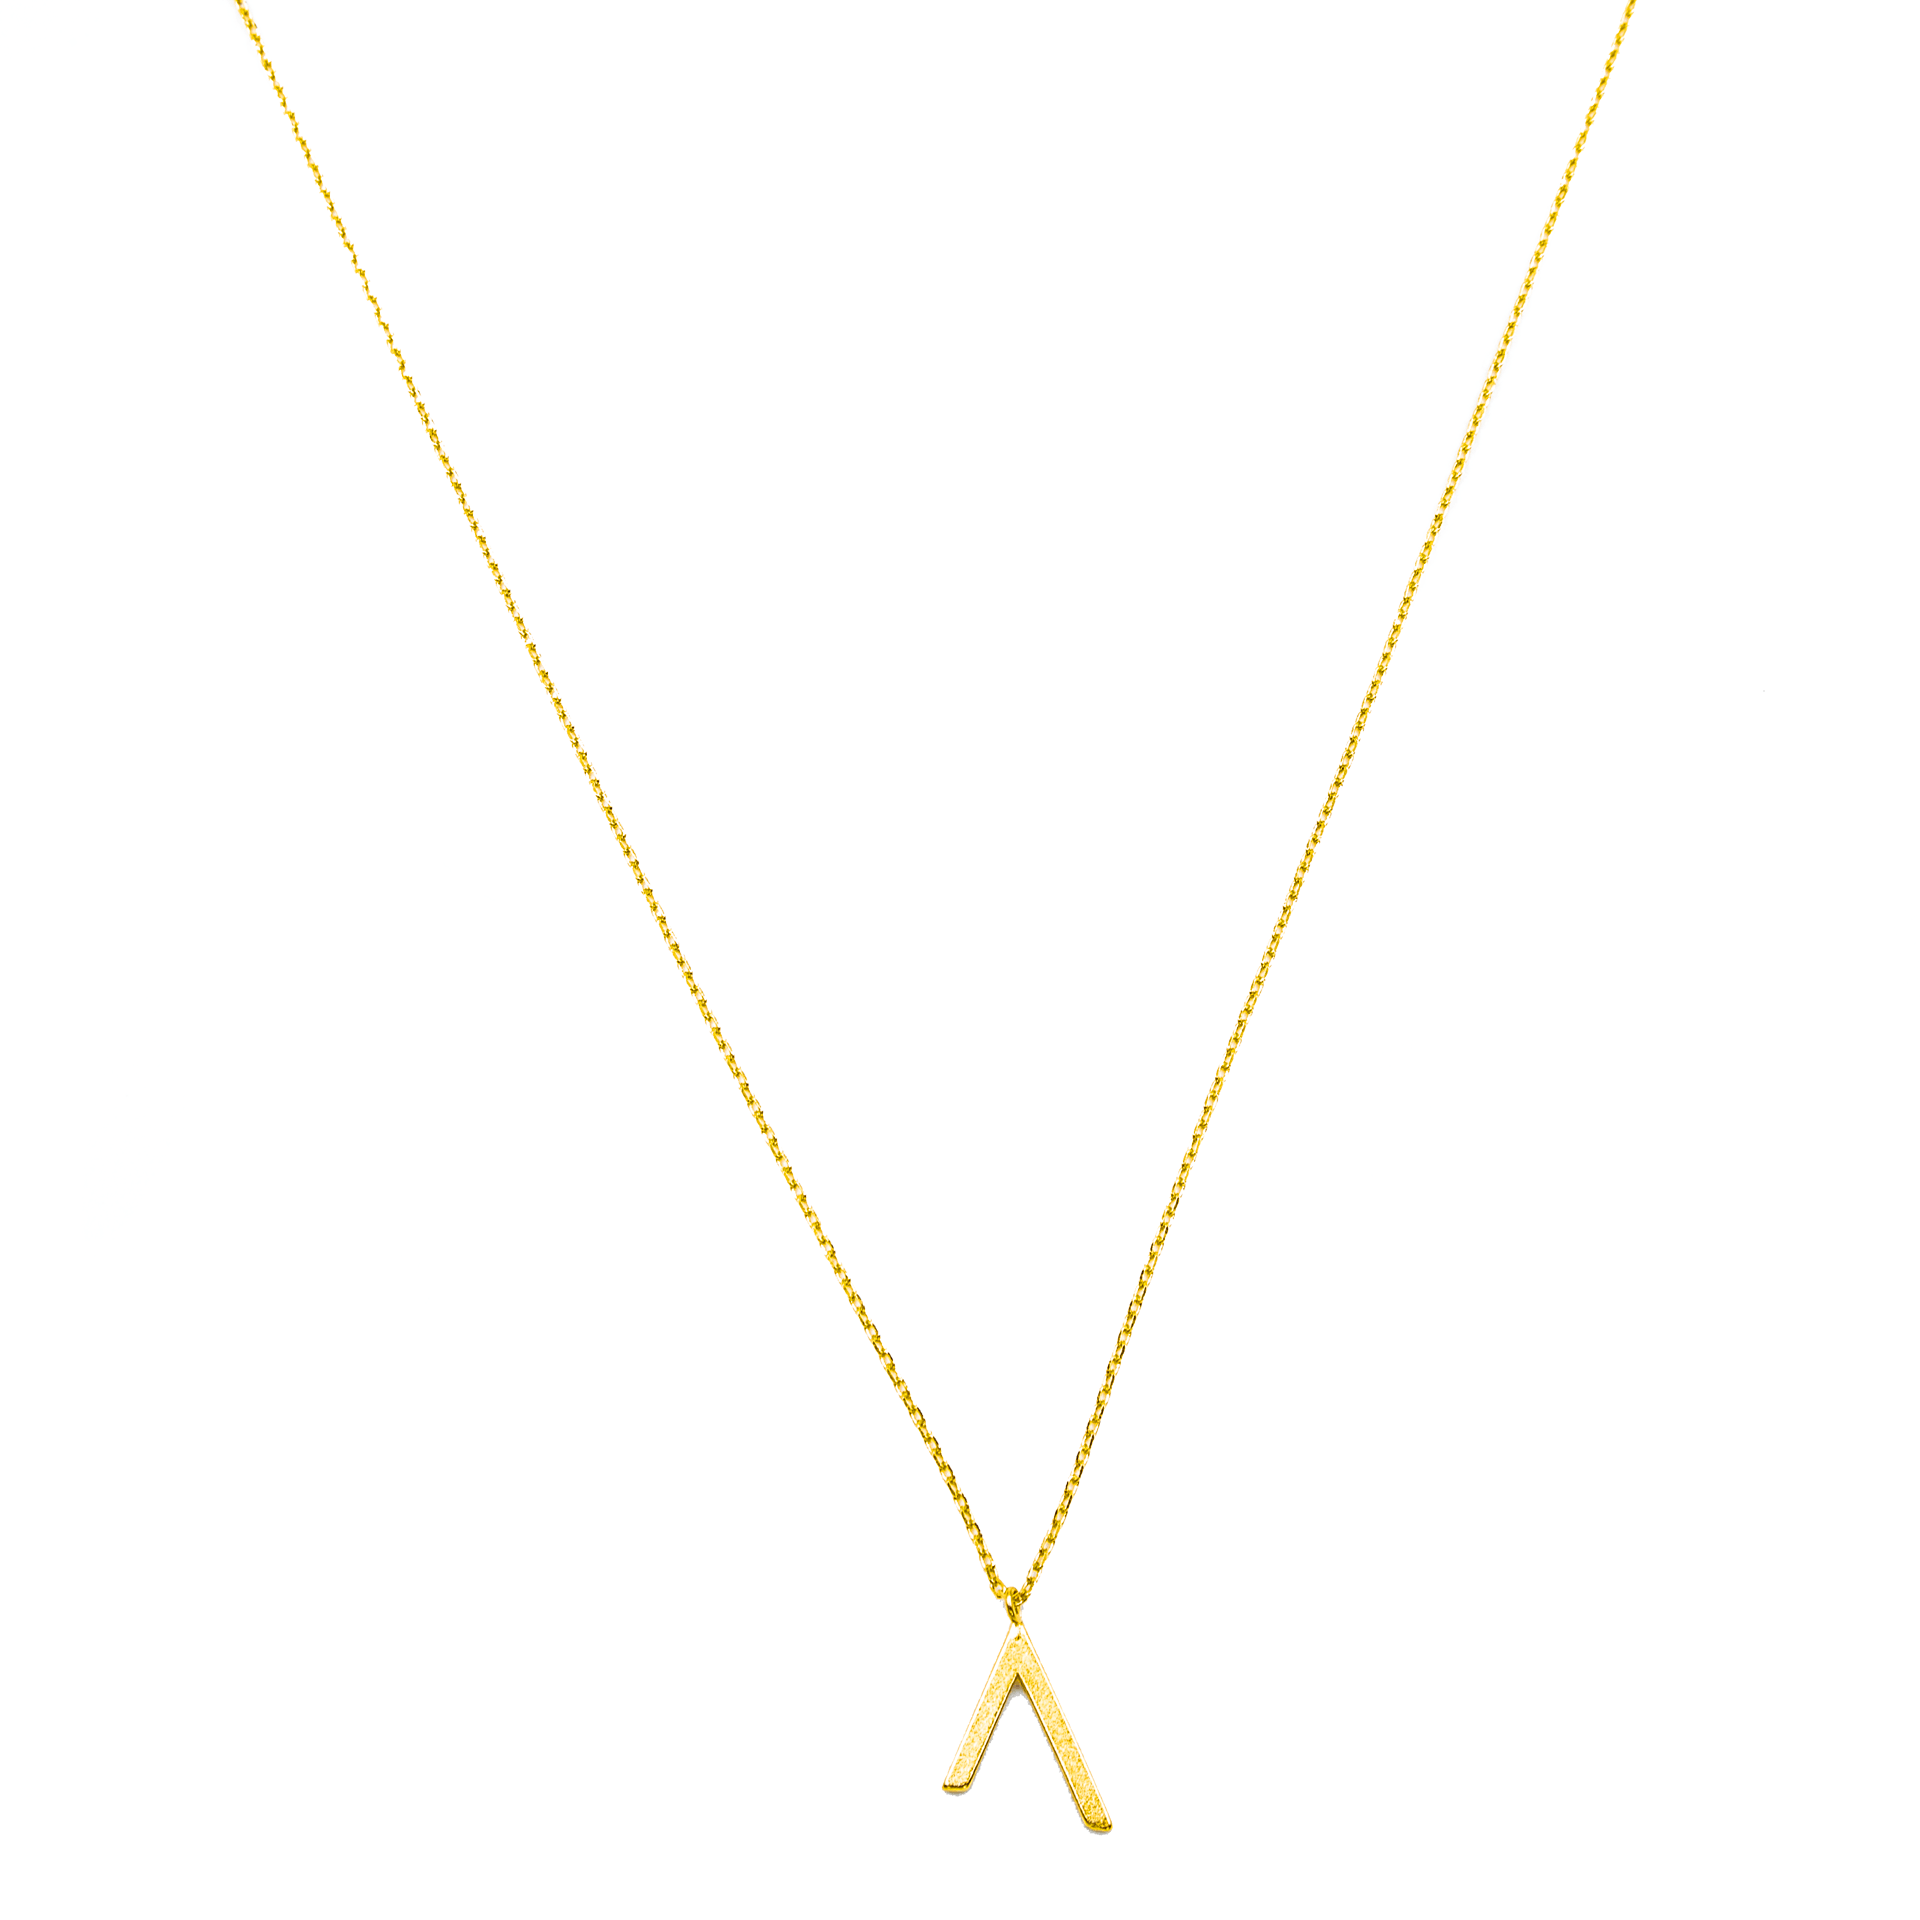 Inverted V Gold Metal Pendant Necklace - Arlo and Arrows